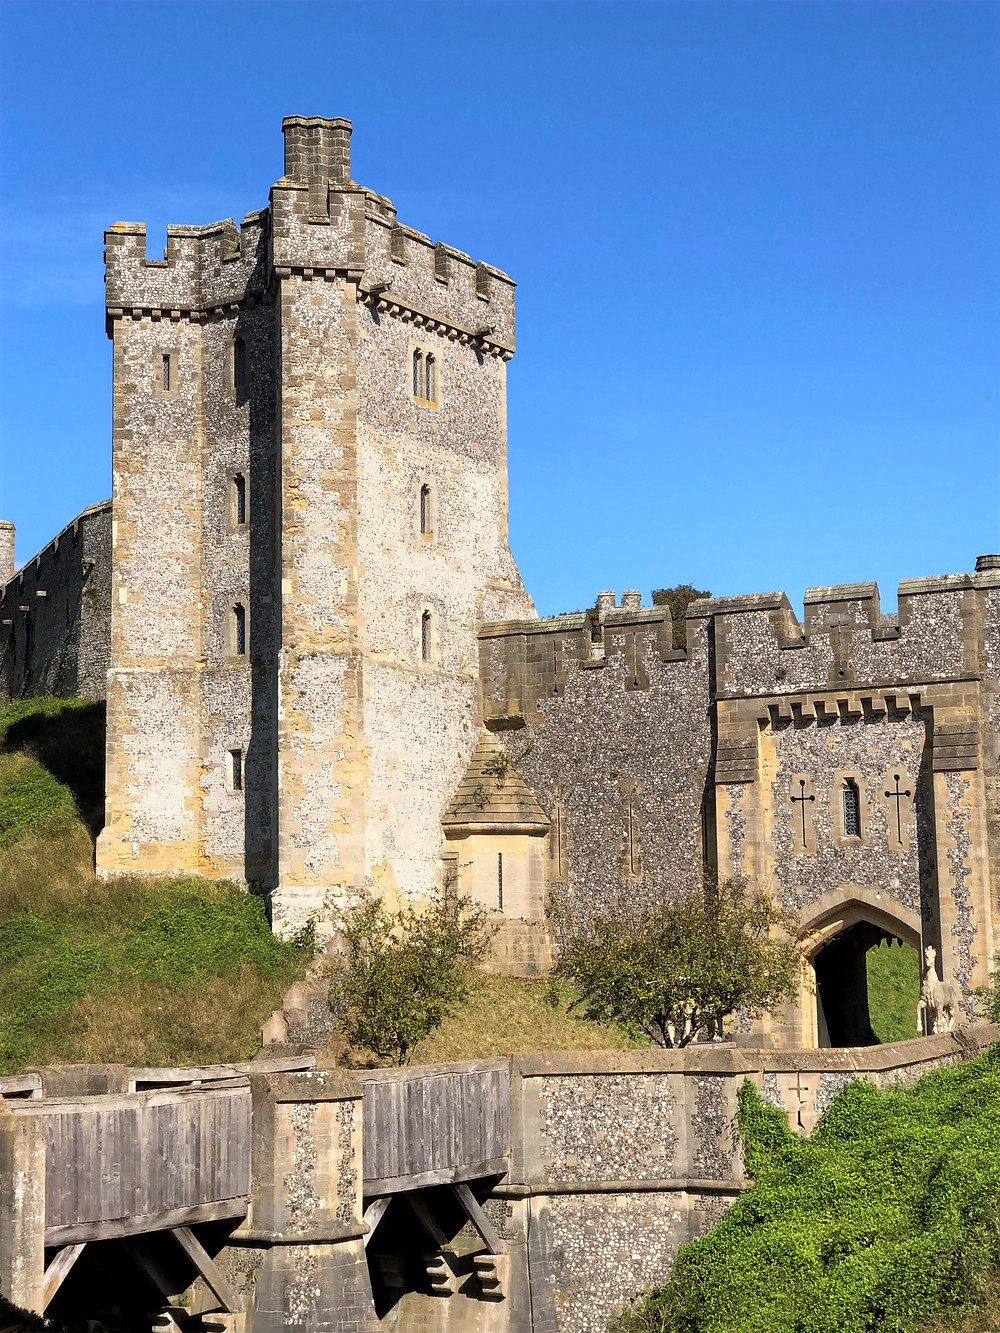 The Bevis Tower in Arundel Castle dates to the 14th century